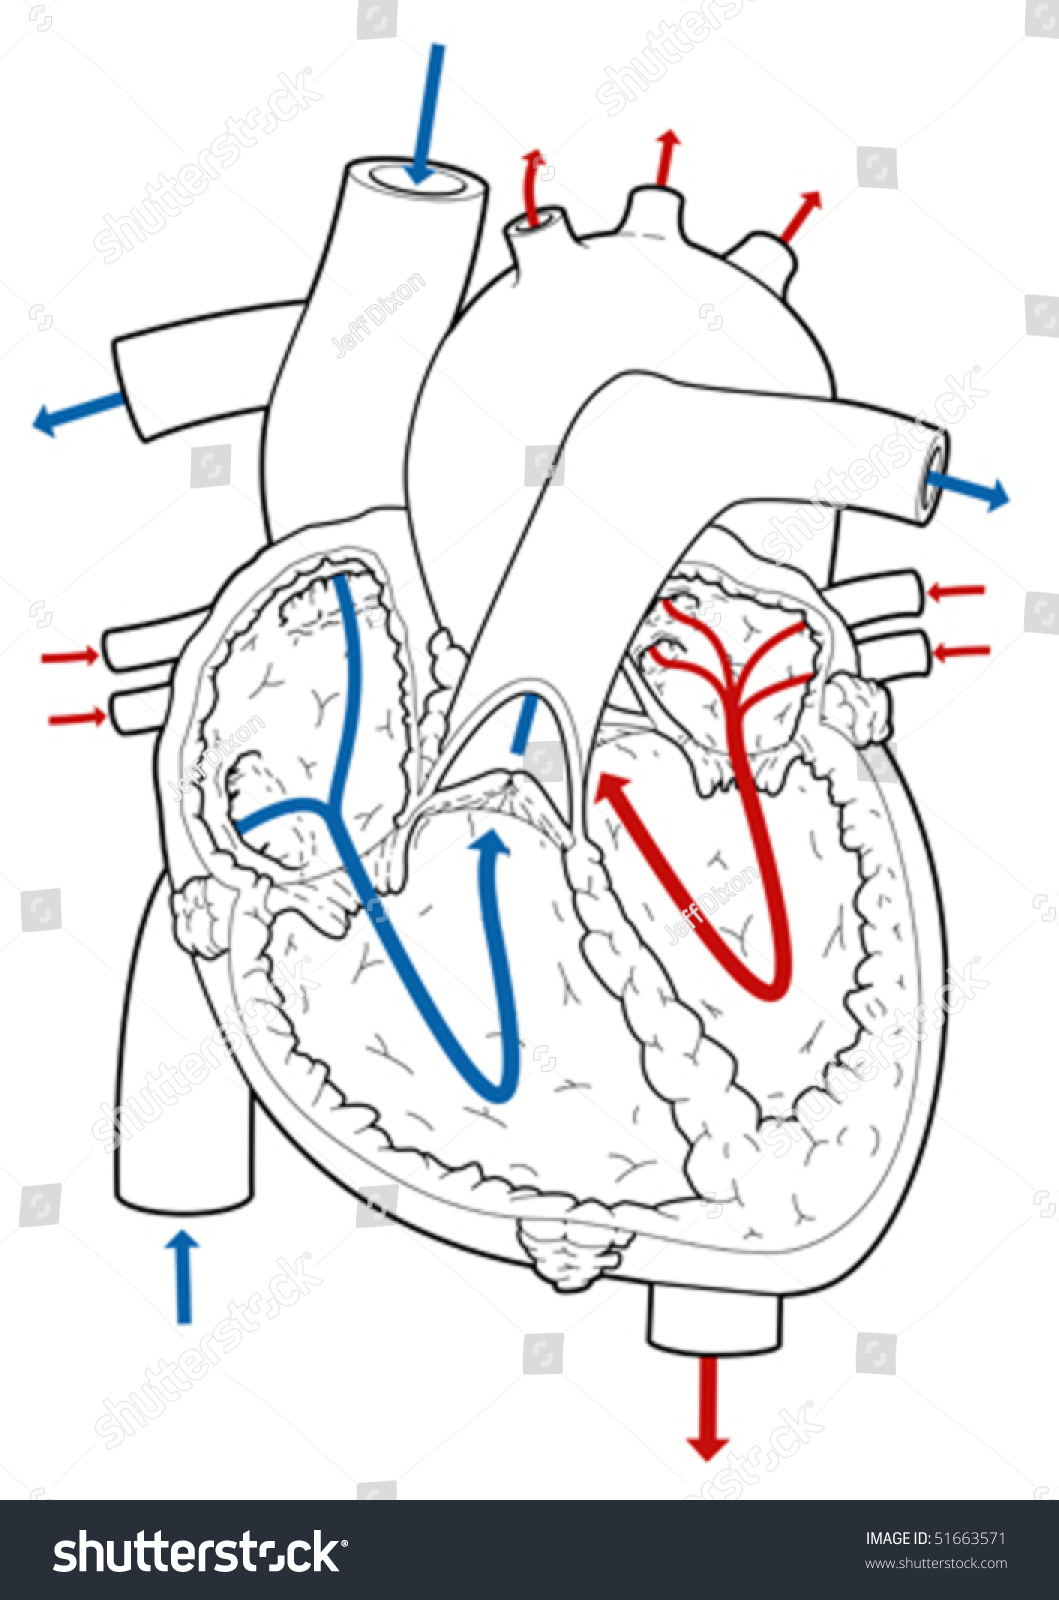 Cross Section Vector Illustration Of A Heart With Arrows ...